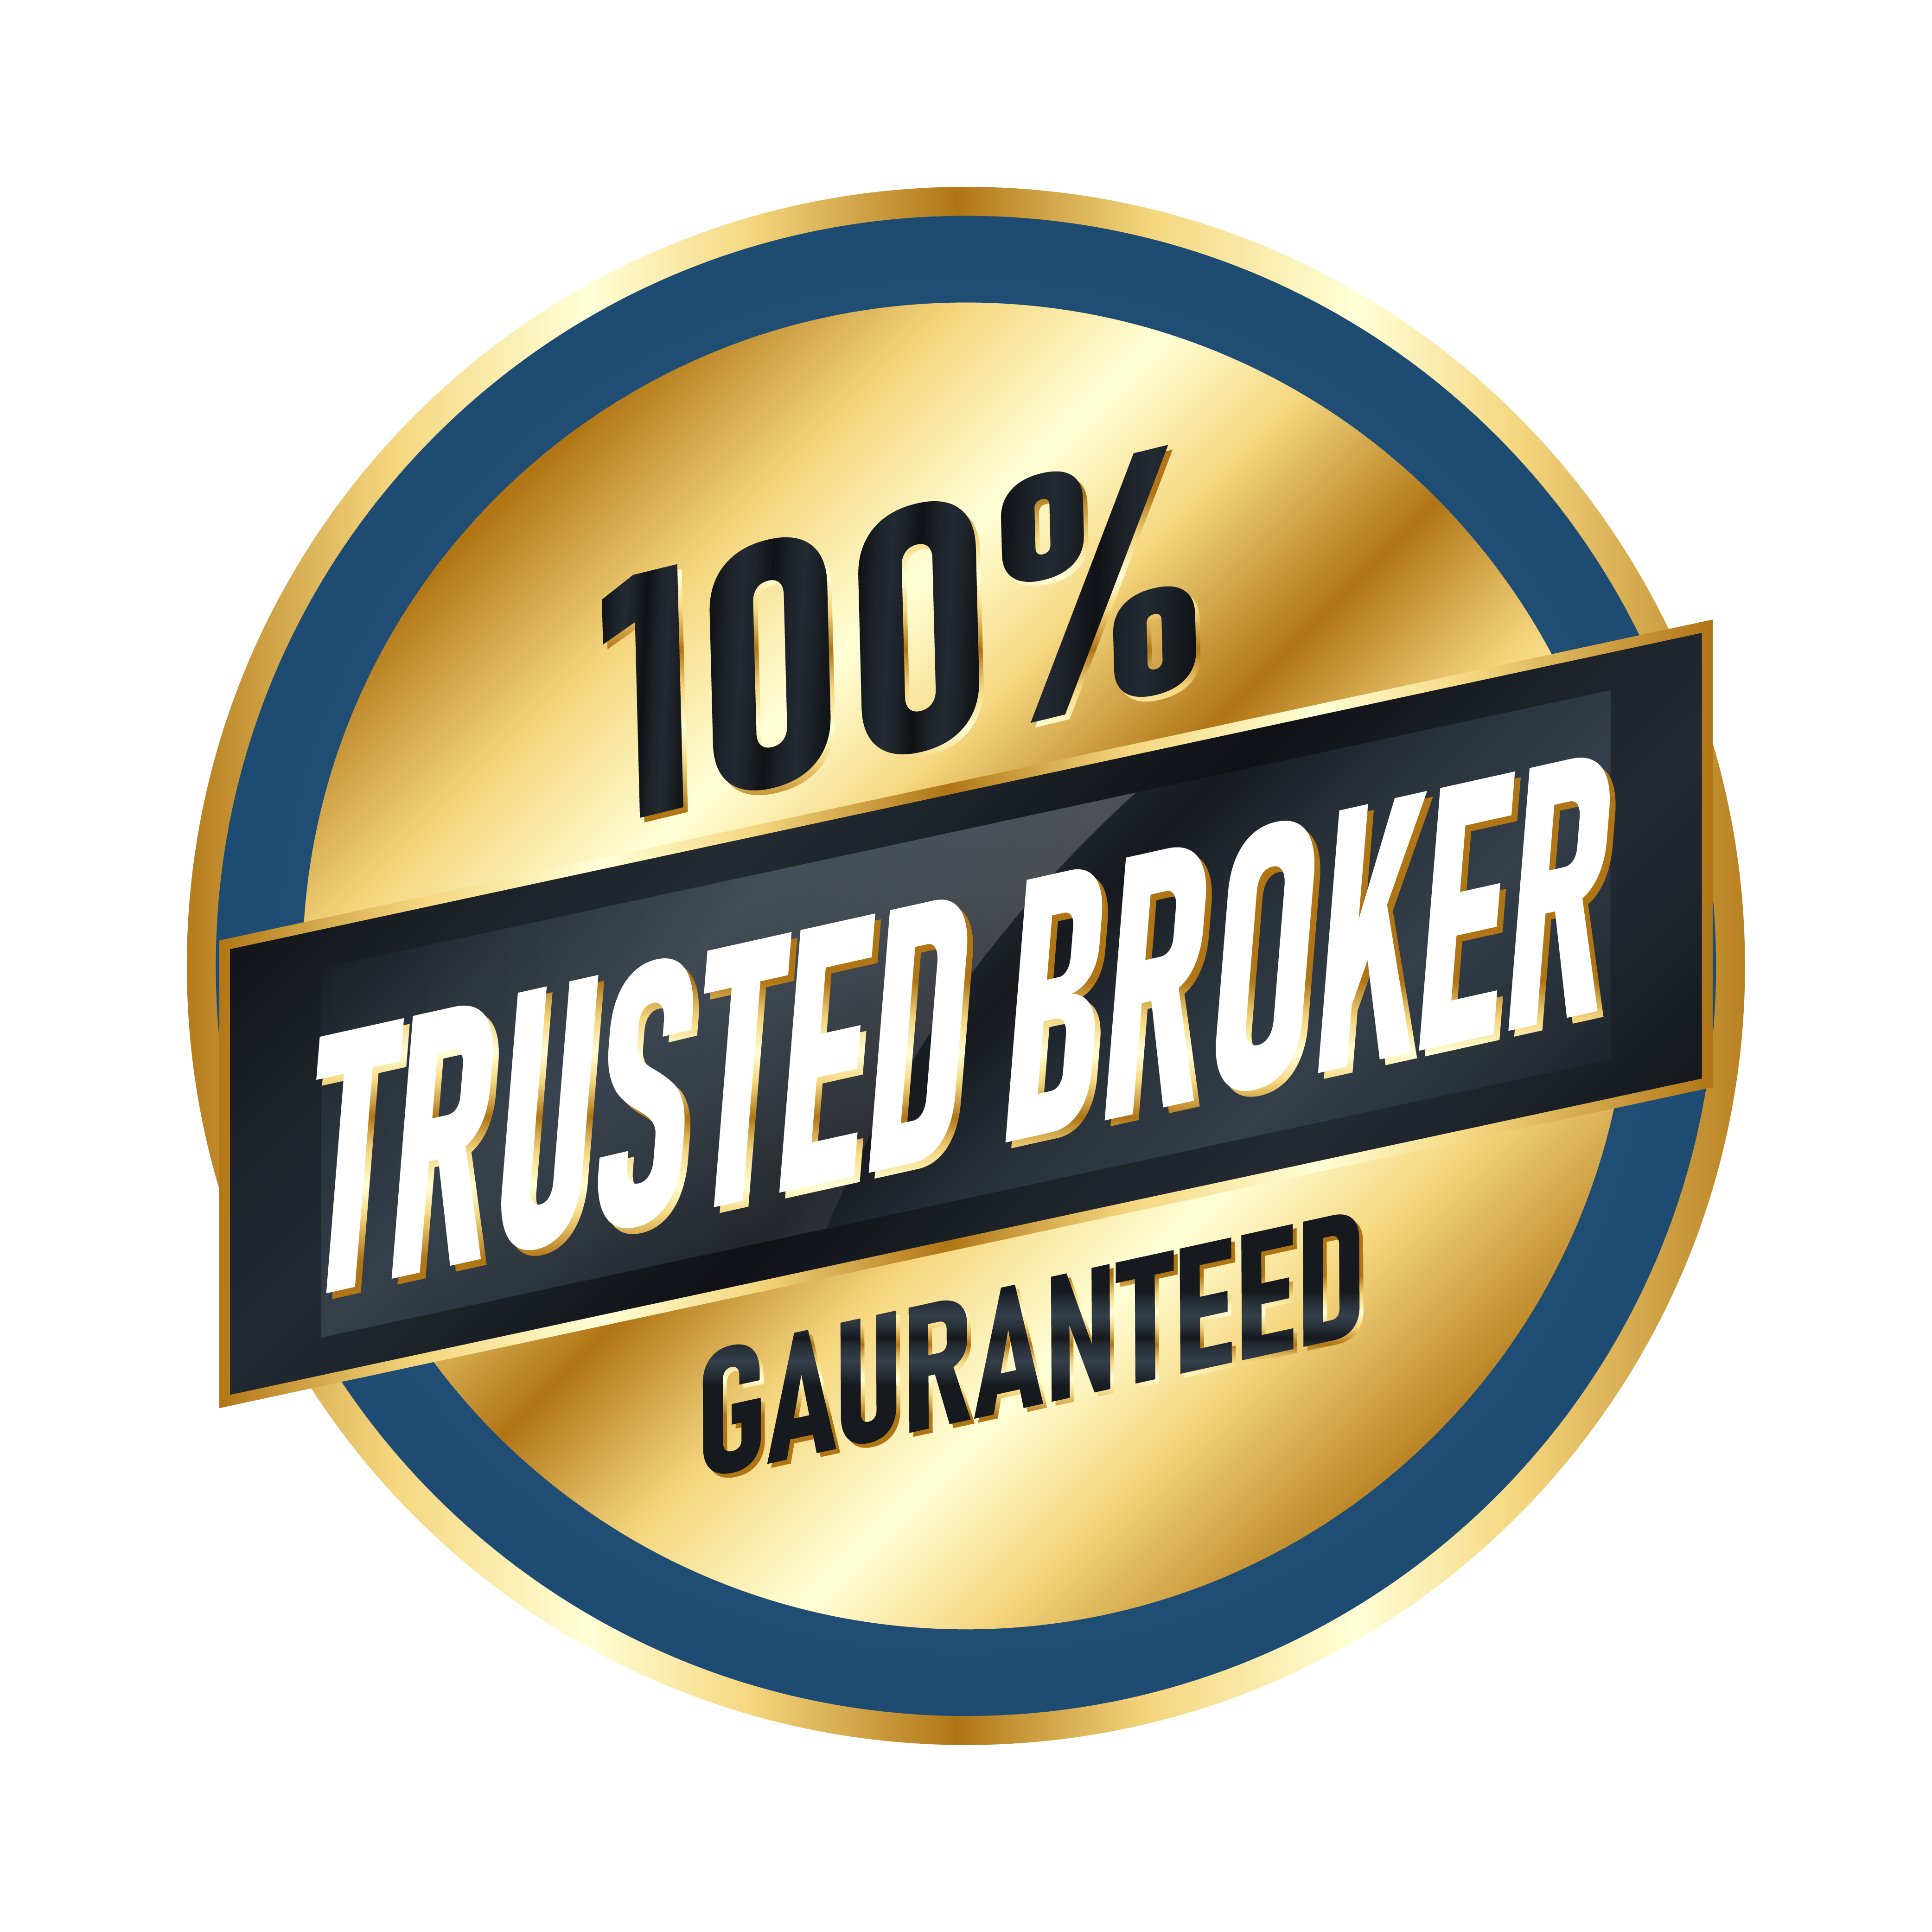 FXPRIMUS is a trusted broker